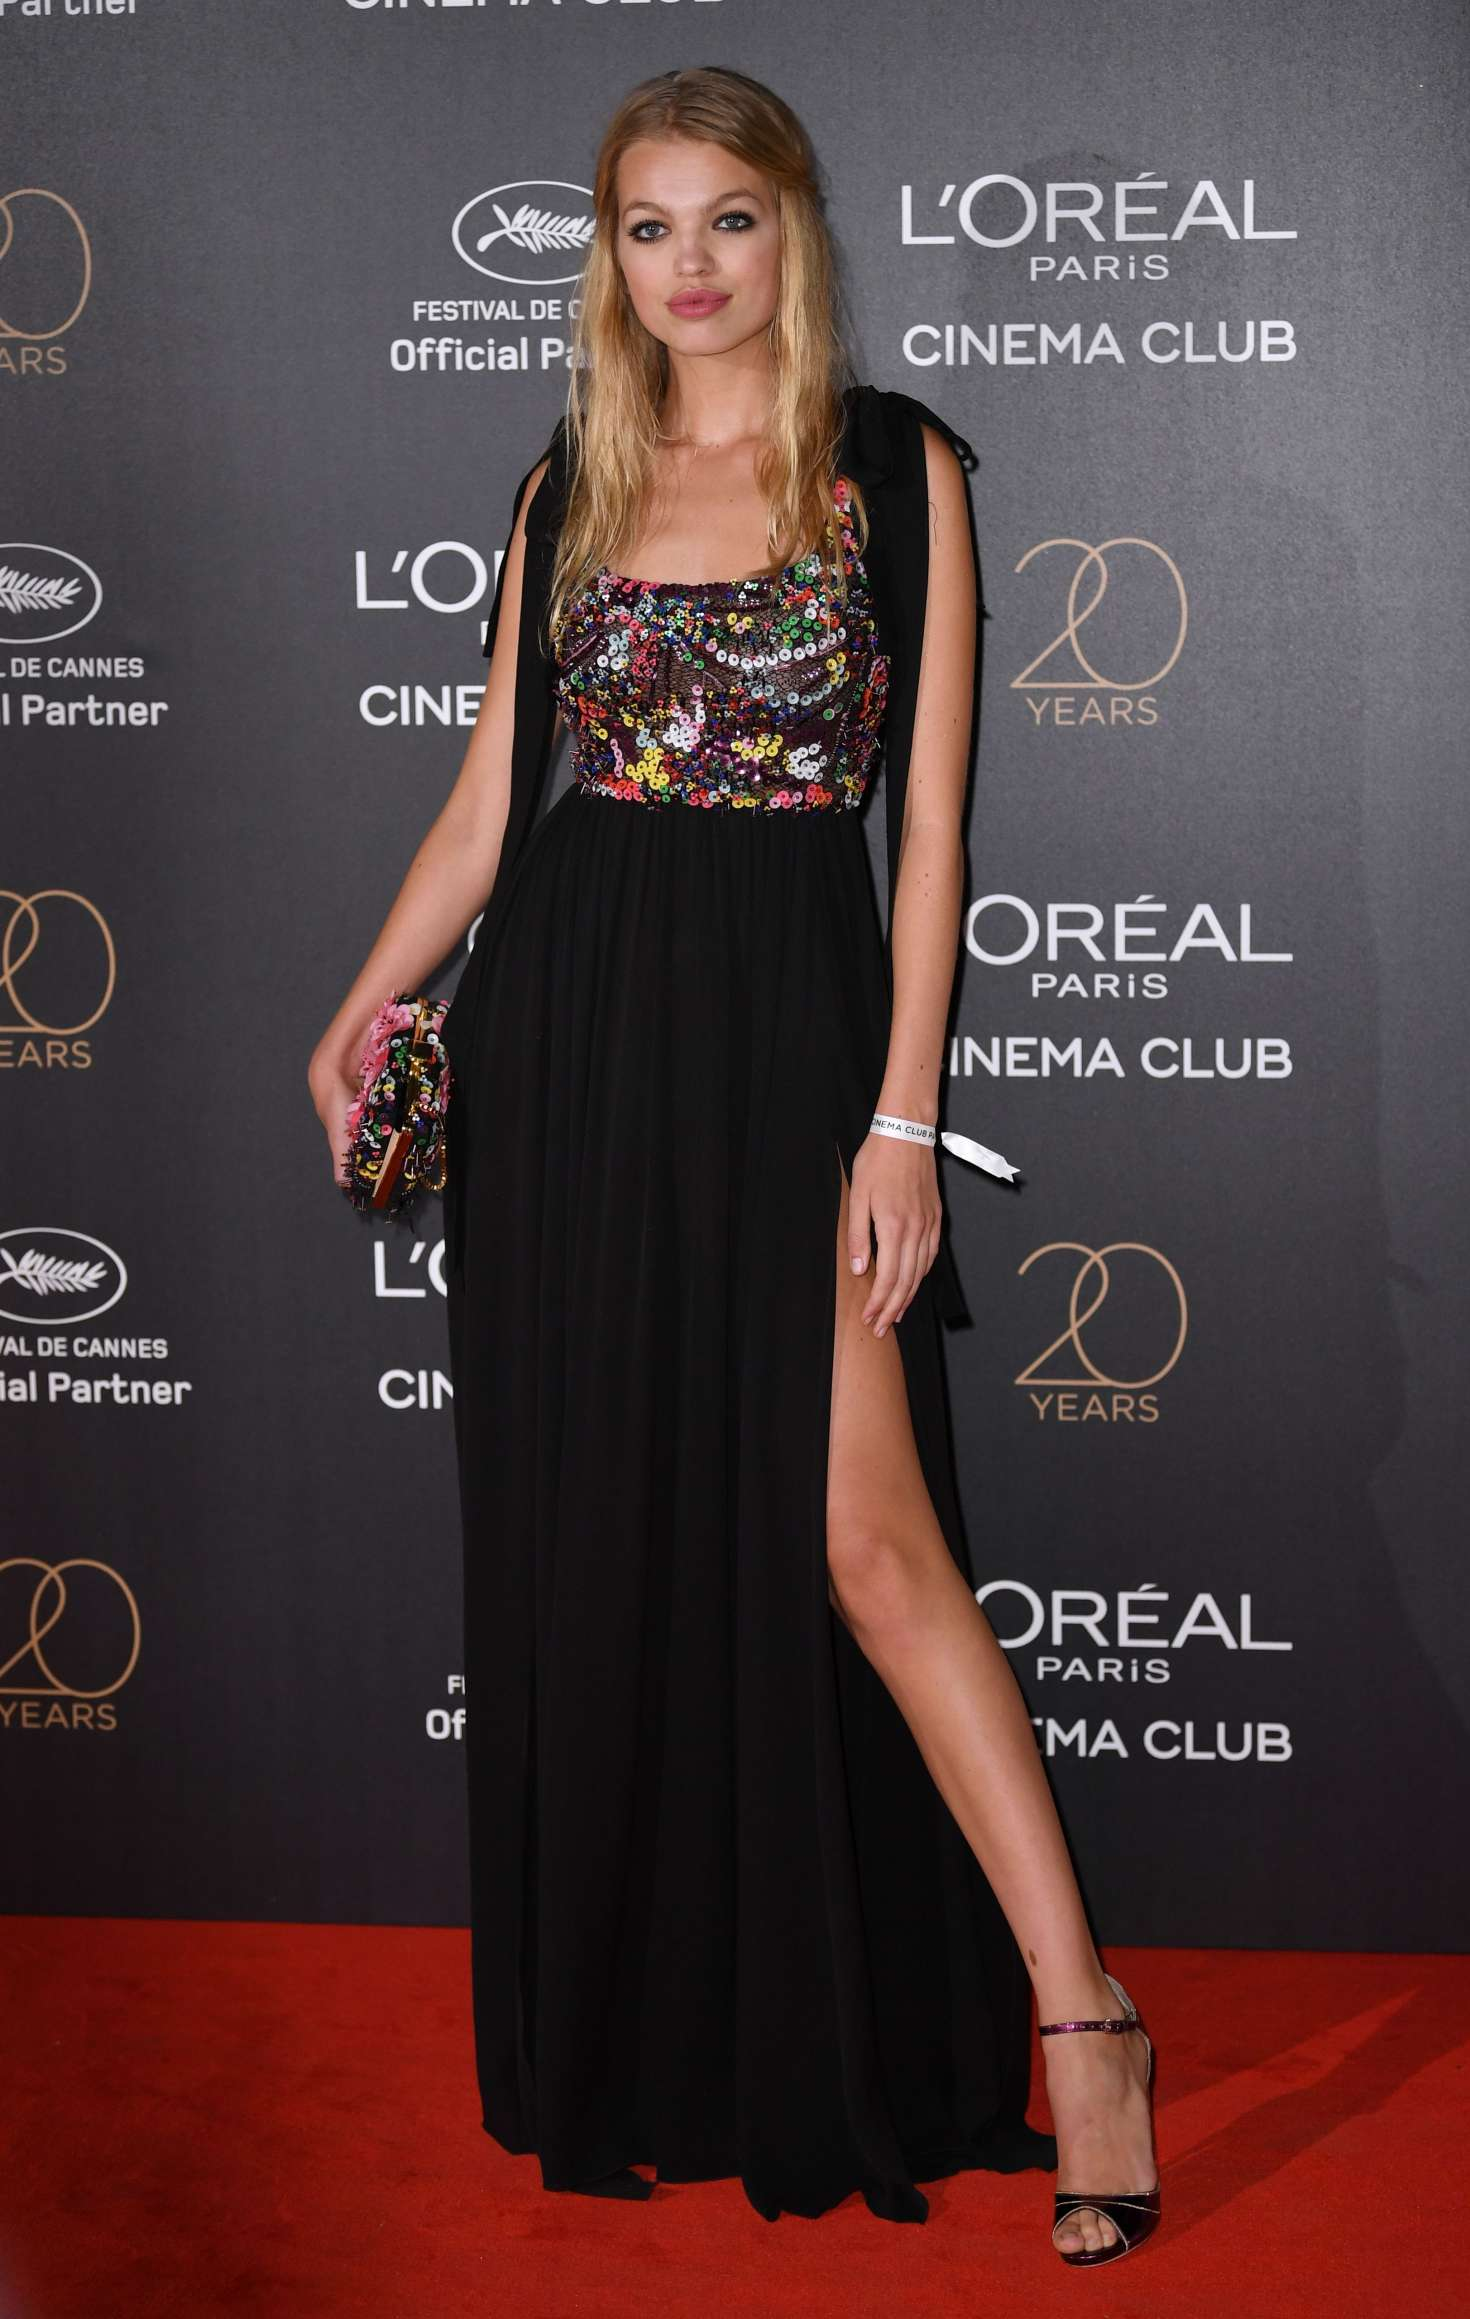 Daphne Groeneveld 2017 : Daphne Groeneveld: LOreal 20th Anniversary Party in Cannes -04